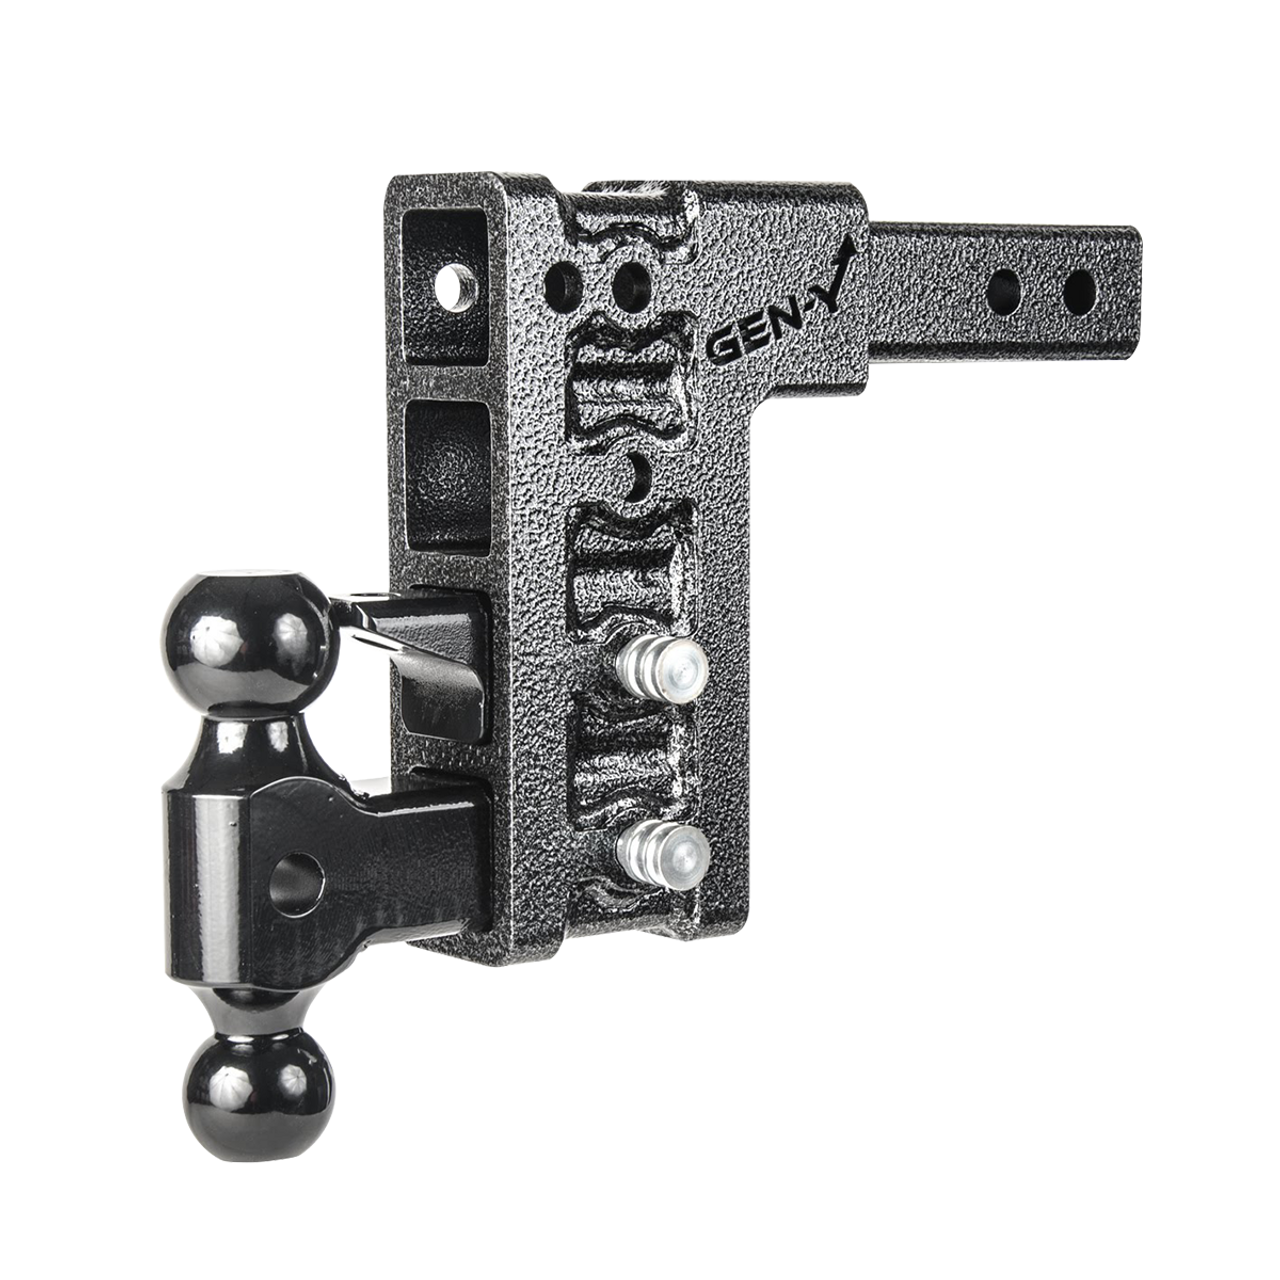 """GH-1724 --- Four Position Mega-Duty 3"""" Shank with Dual Ball and Pintle - 32,000 lb Capacity"""